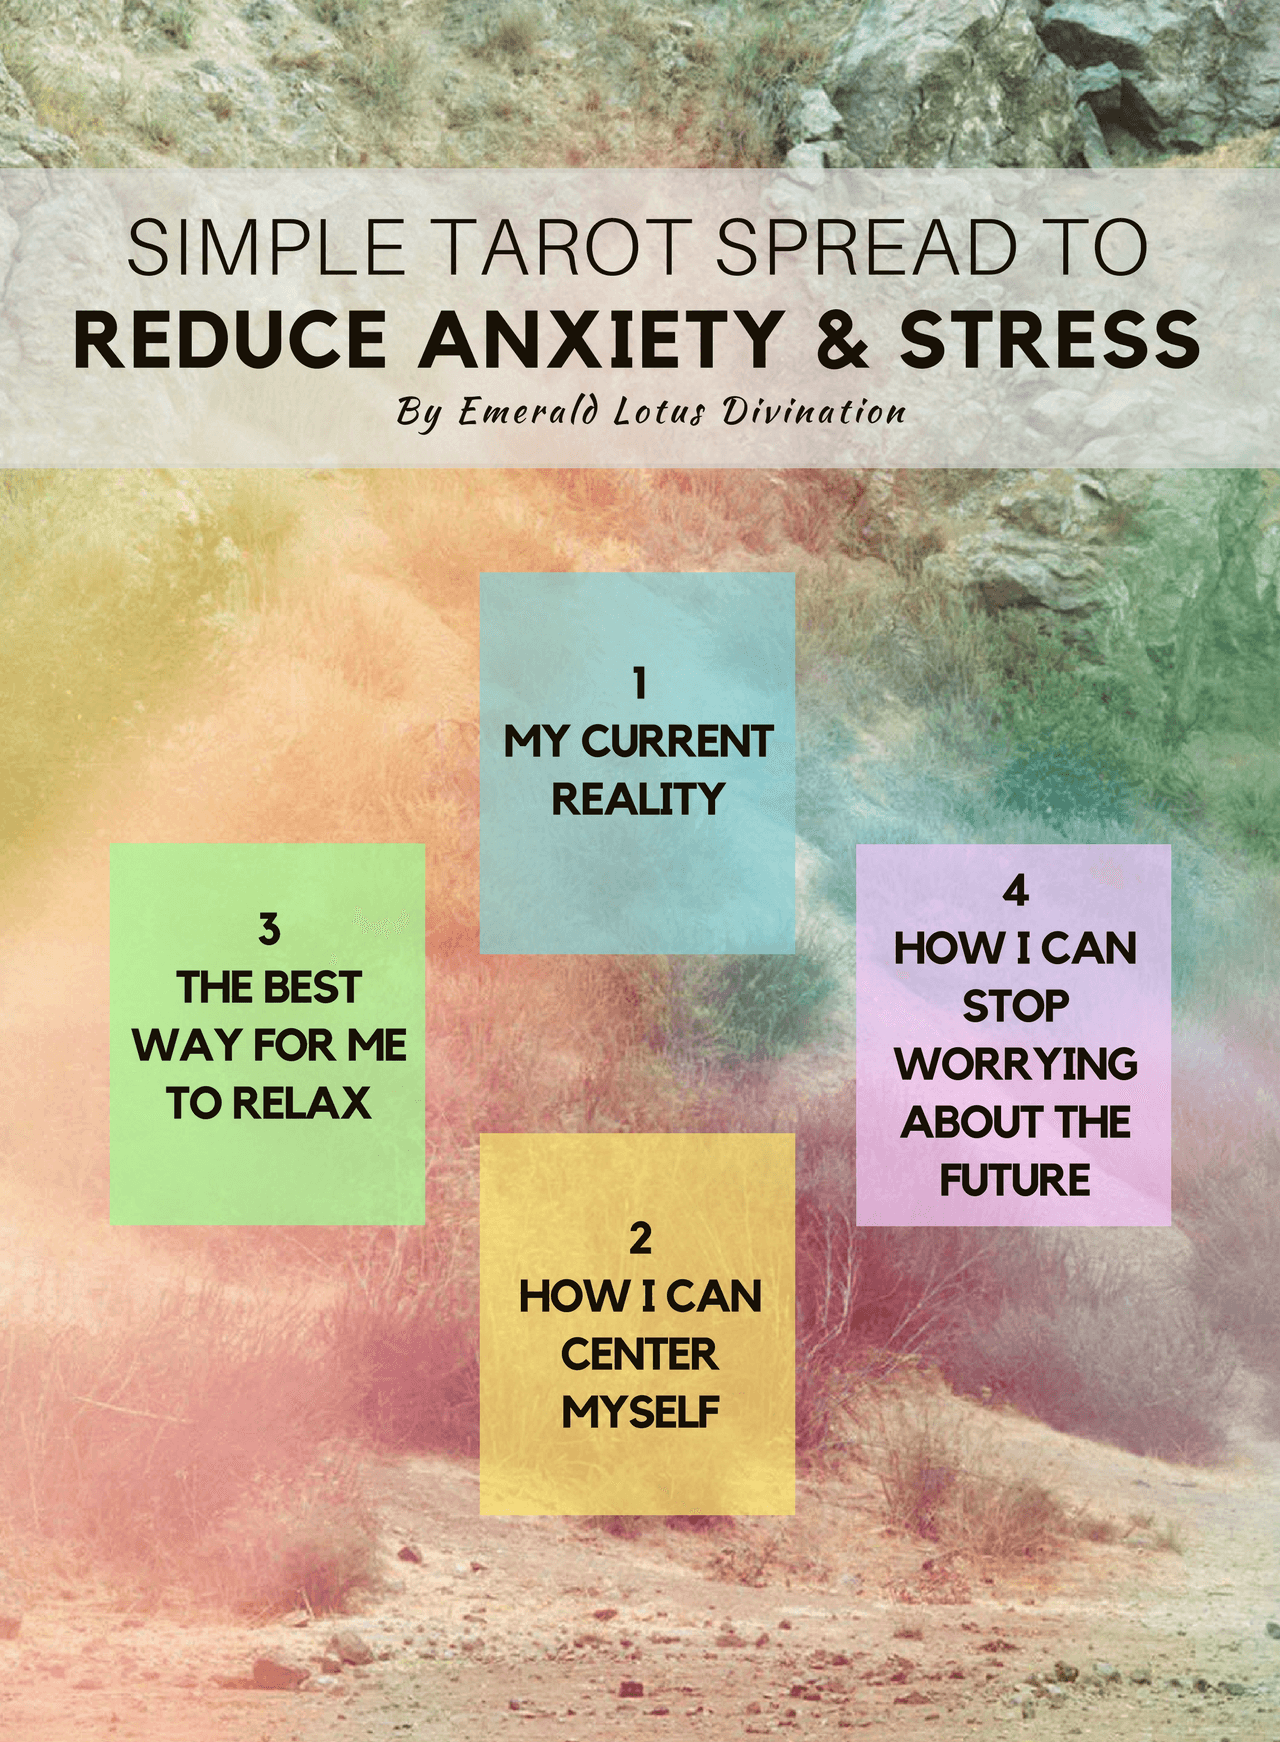 rsz_tarot_spread_for_stress_and_anxiety_reduction_1-1.png